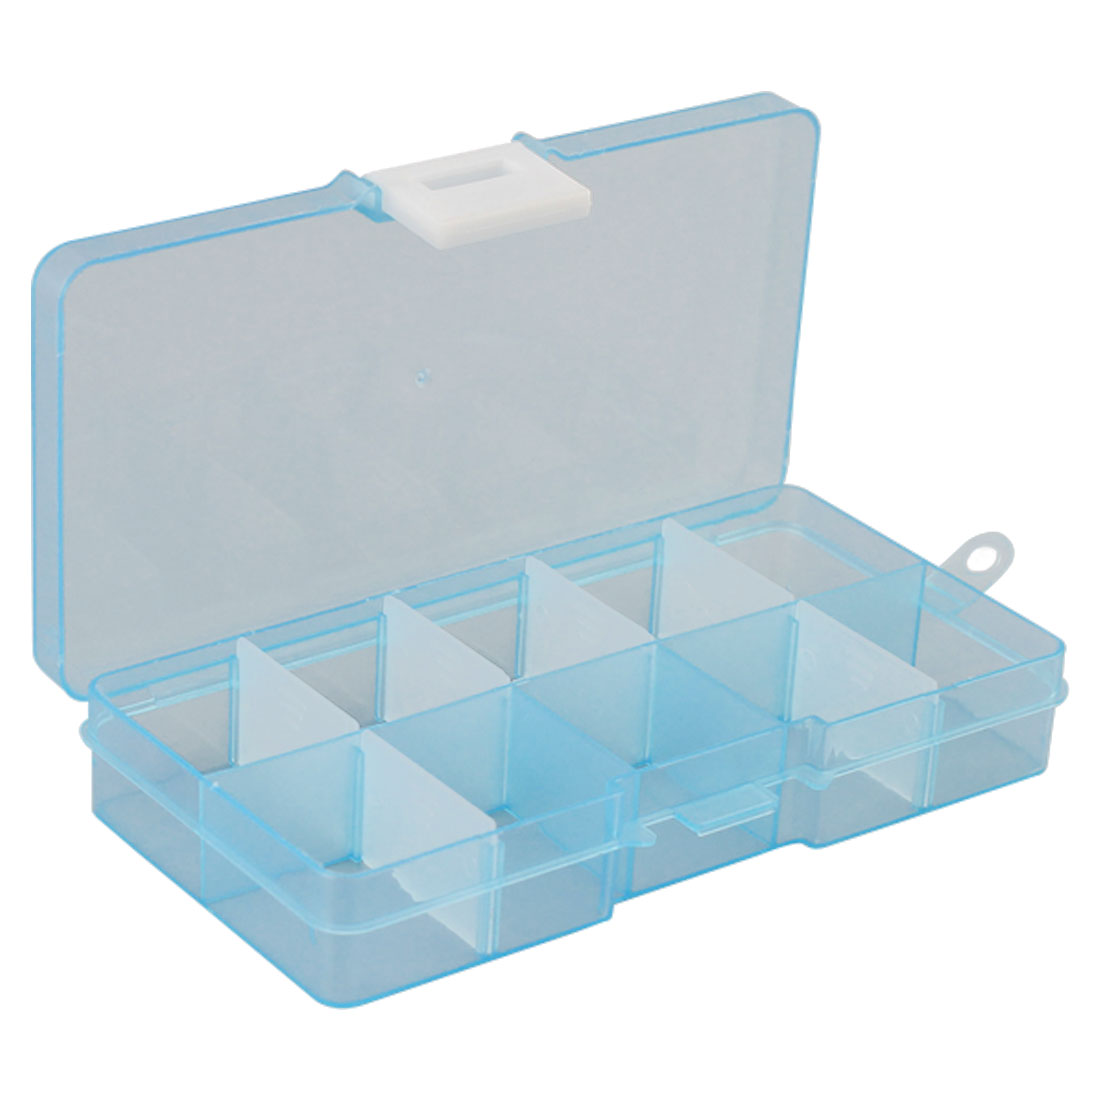 Organizer Plastic Case 10 Slots Cells Colorful Portable Jewelry Tool Storage Box Container Ring Electronic Parts Screw Beads Organizer Plastic Case 10 Slots Cells Colorful Portable Jewelry Tool Storage Box Container Ring Electronic Parts Screw Beads